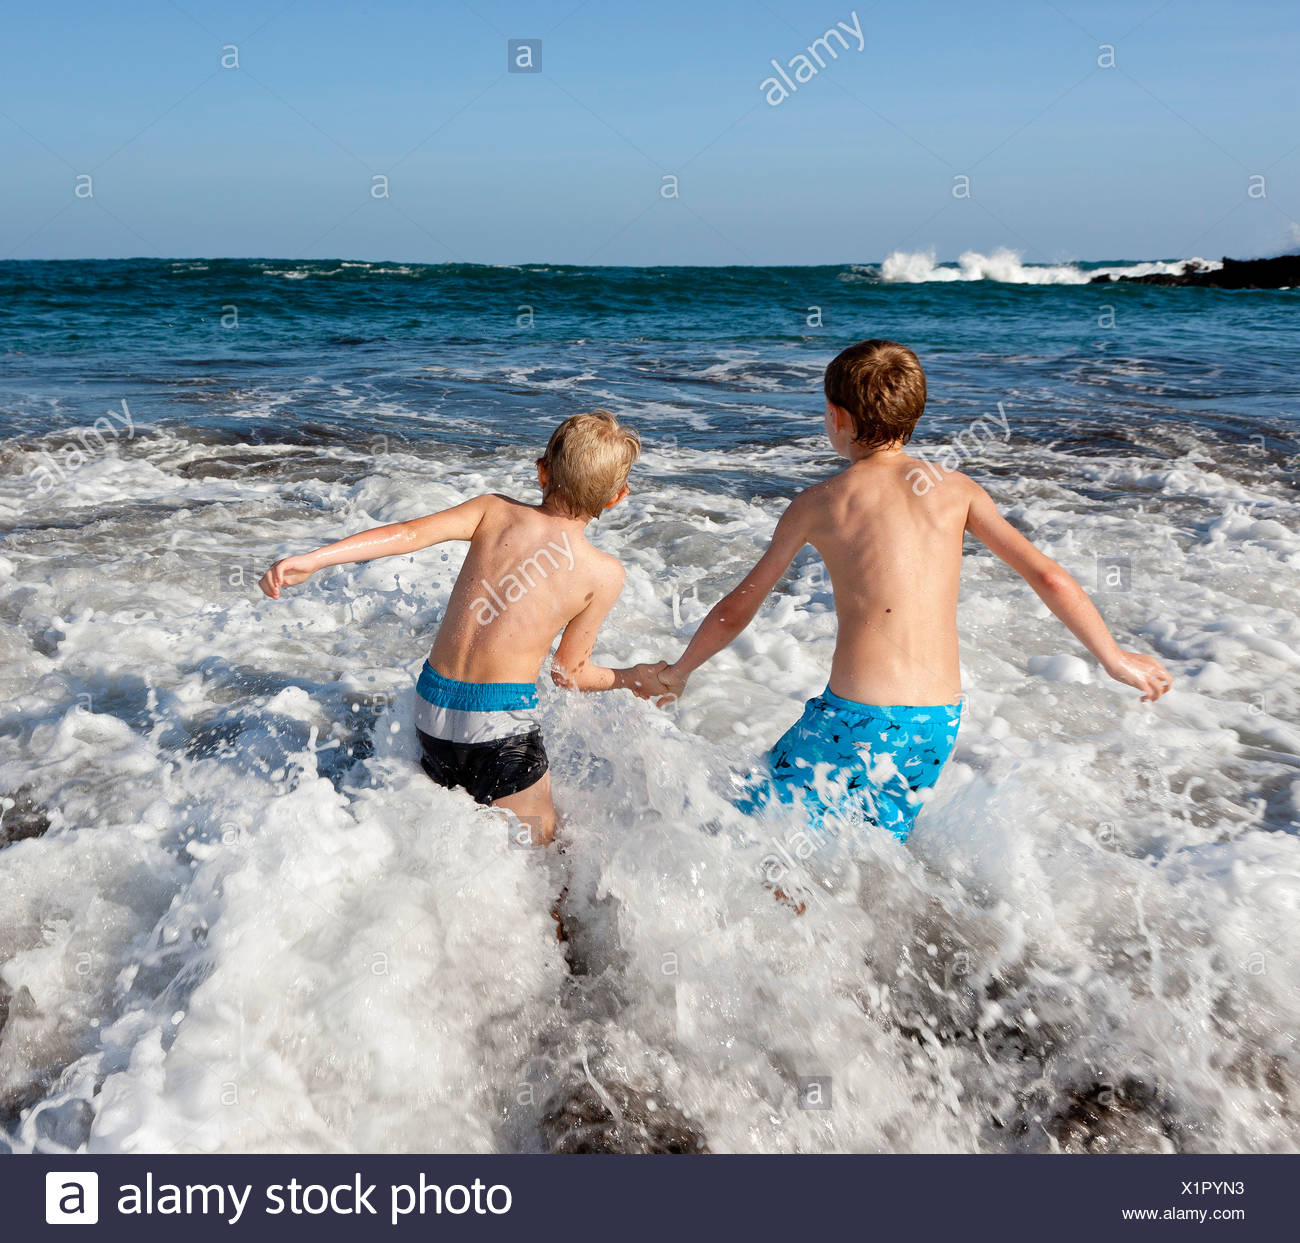 Children playing in the surf, Playa Jardin beach, Puerto de la Cruz, Tenerife, northern part, Canary Islands, Spain, Europe - Stock Image